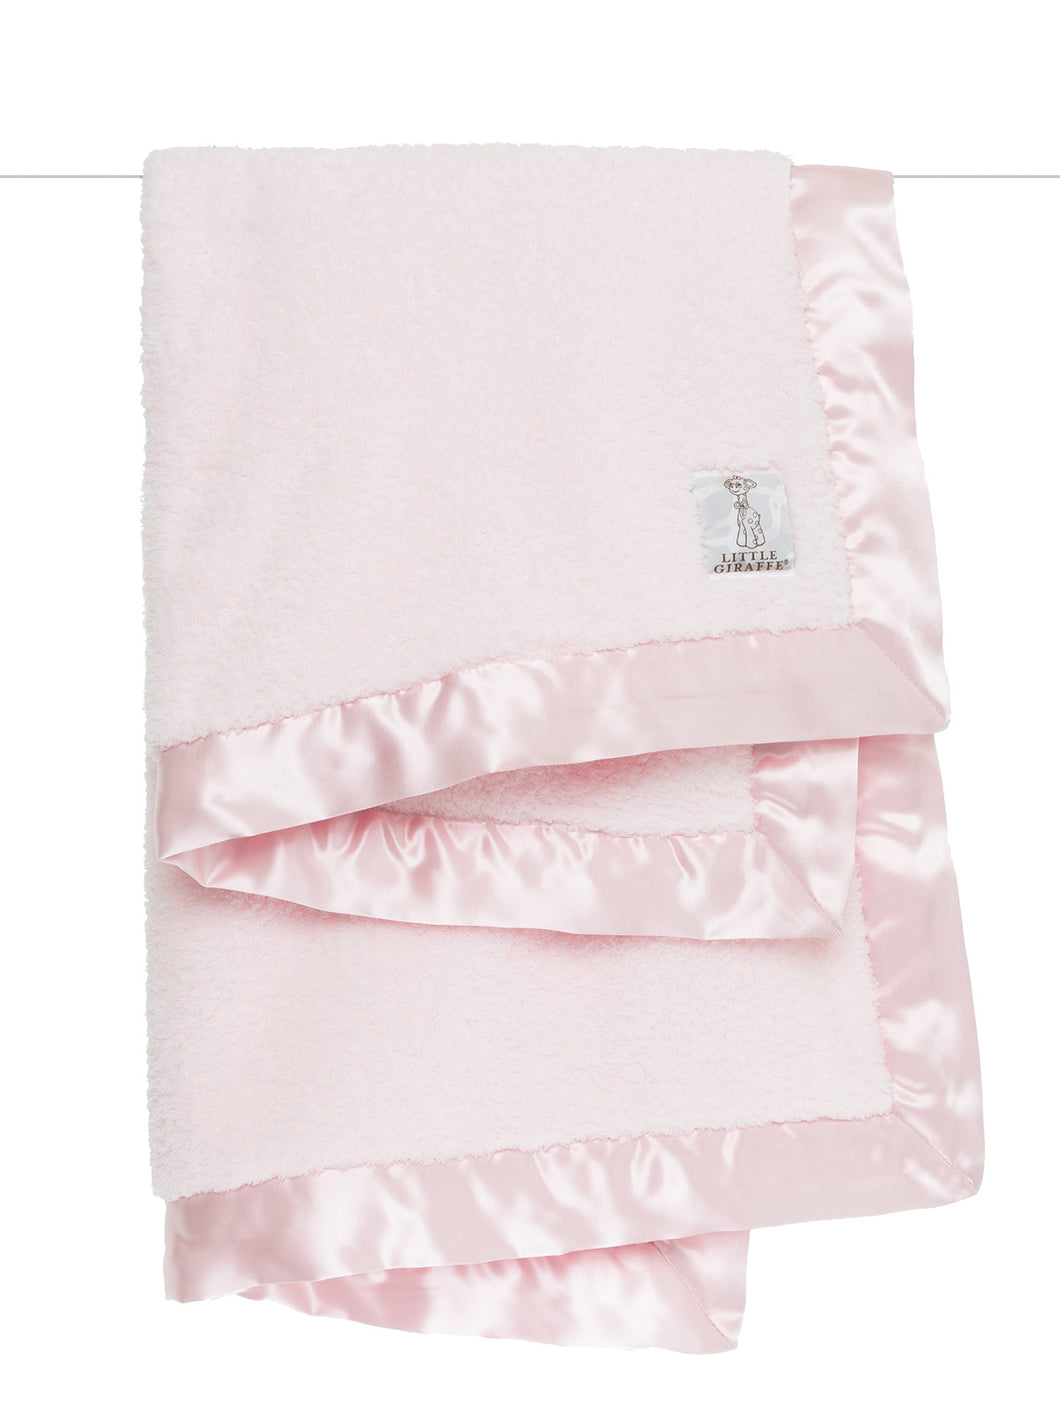 LG Pink Double Sided Chenille Blanket